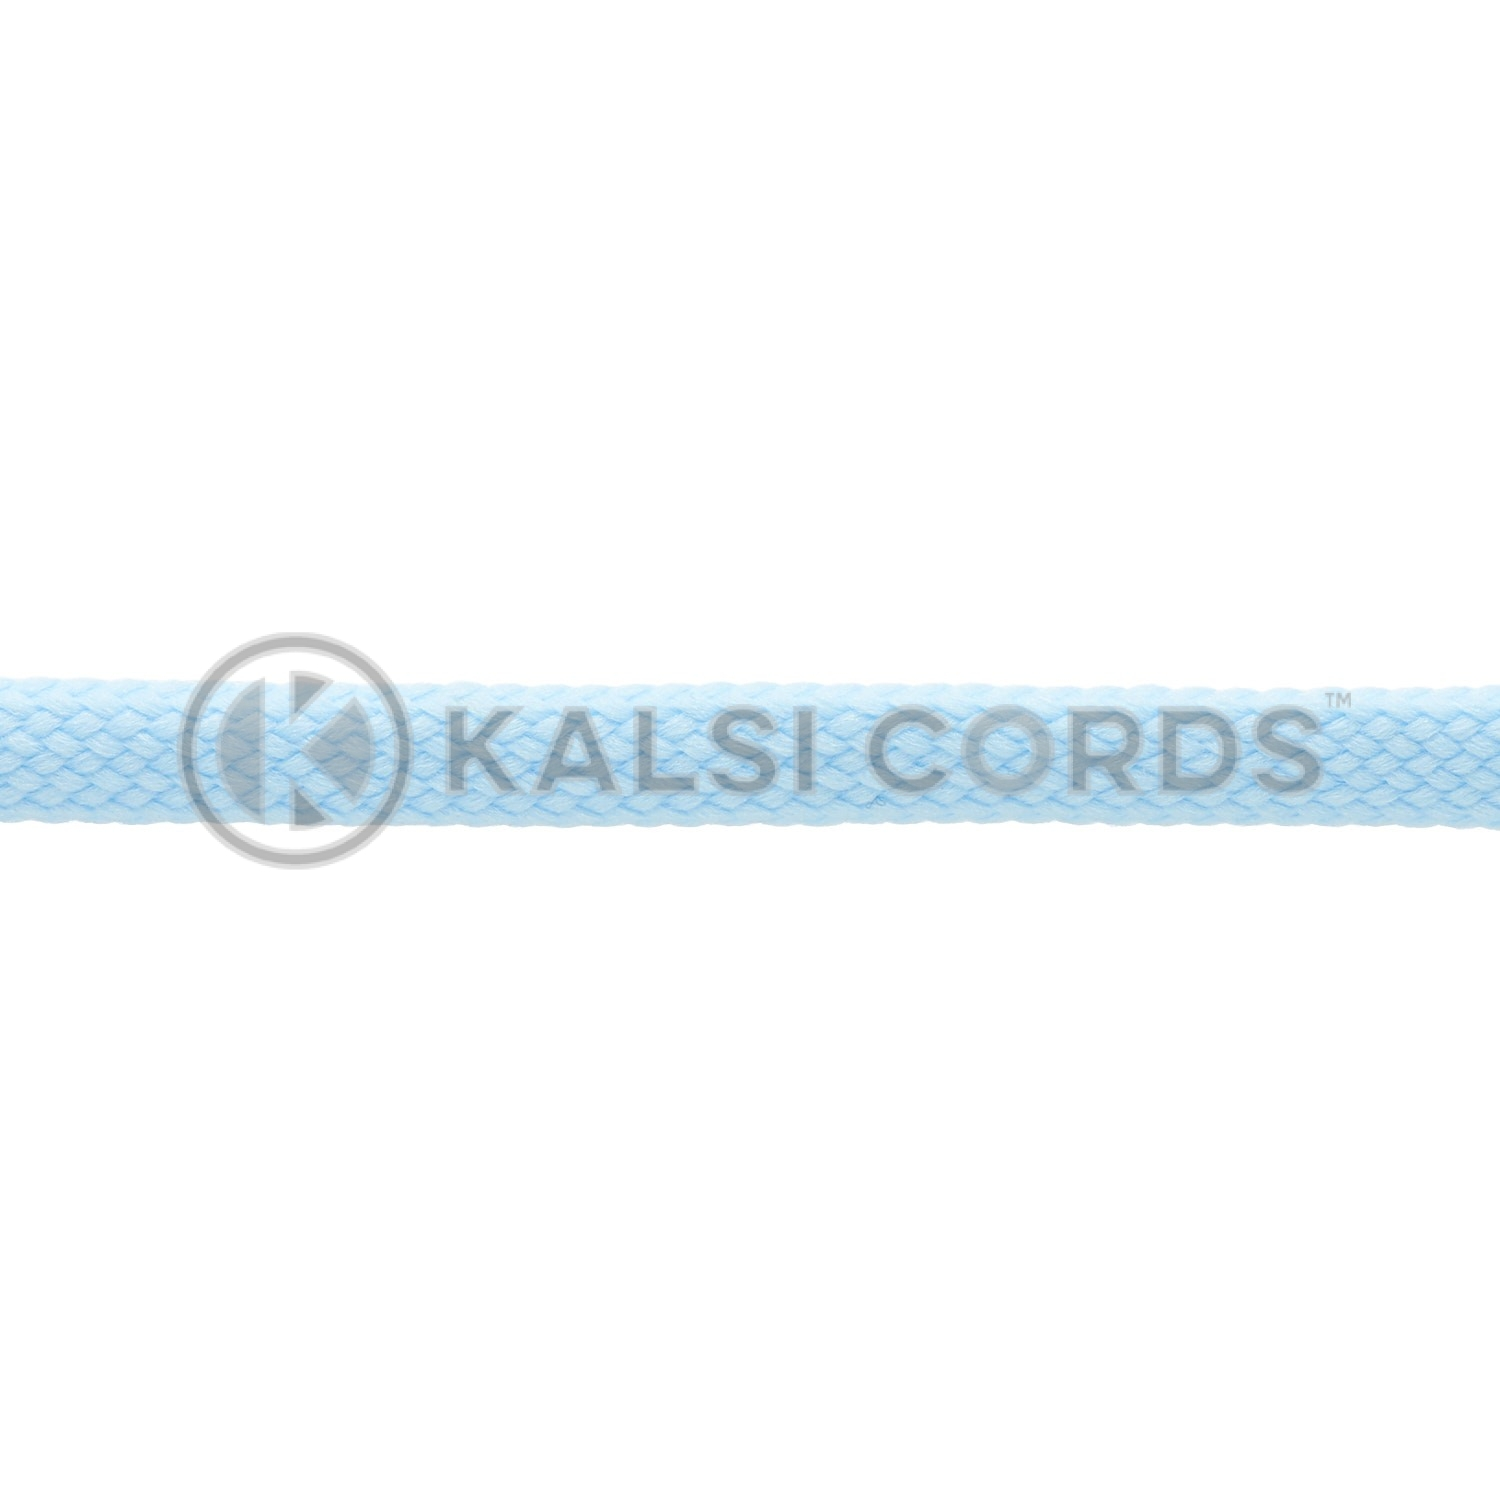 7mm Flat Shoe Laces Tubular Baby Blue PG835 Kids Toddlers